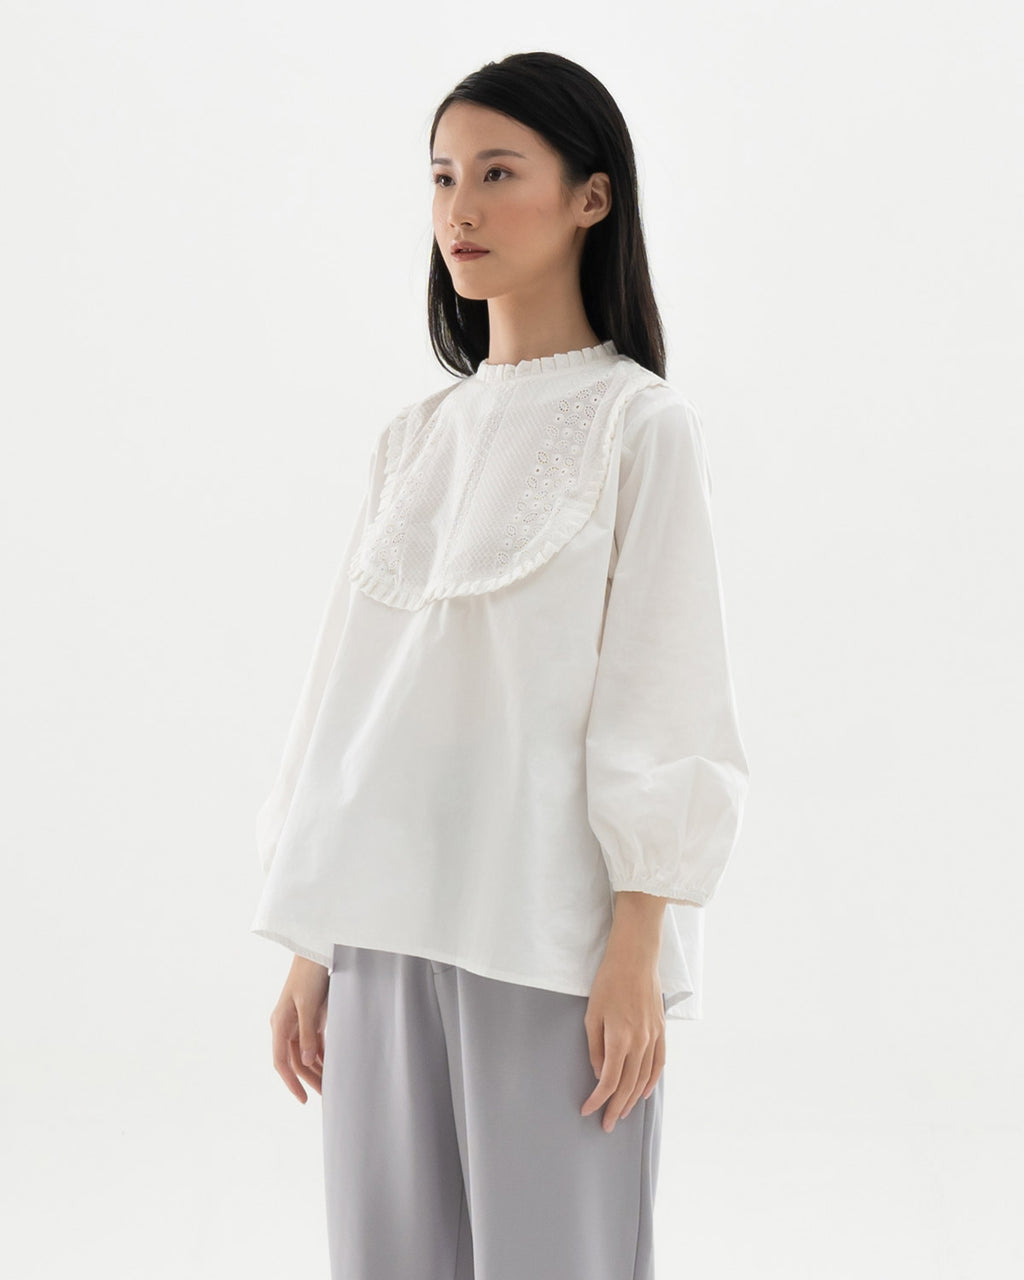 Faye White Blouse